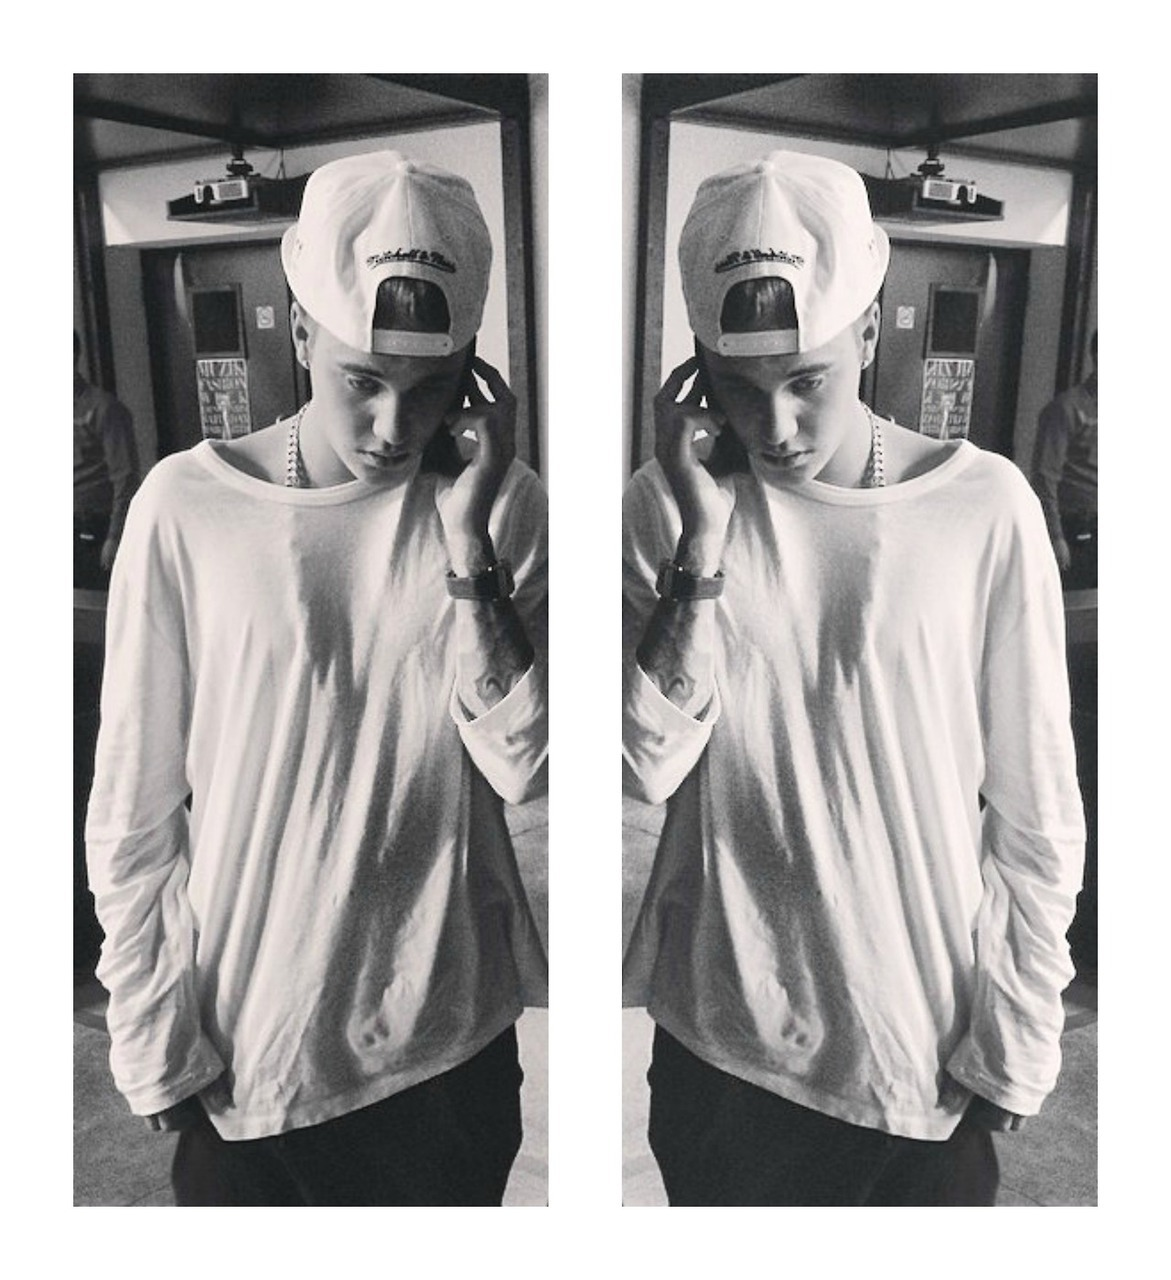 black and white and justin bieber image